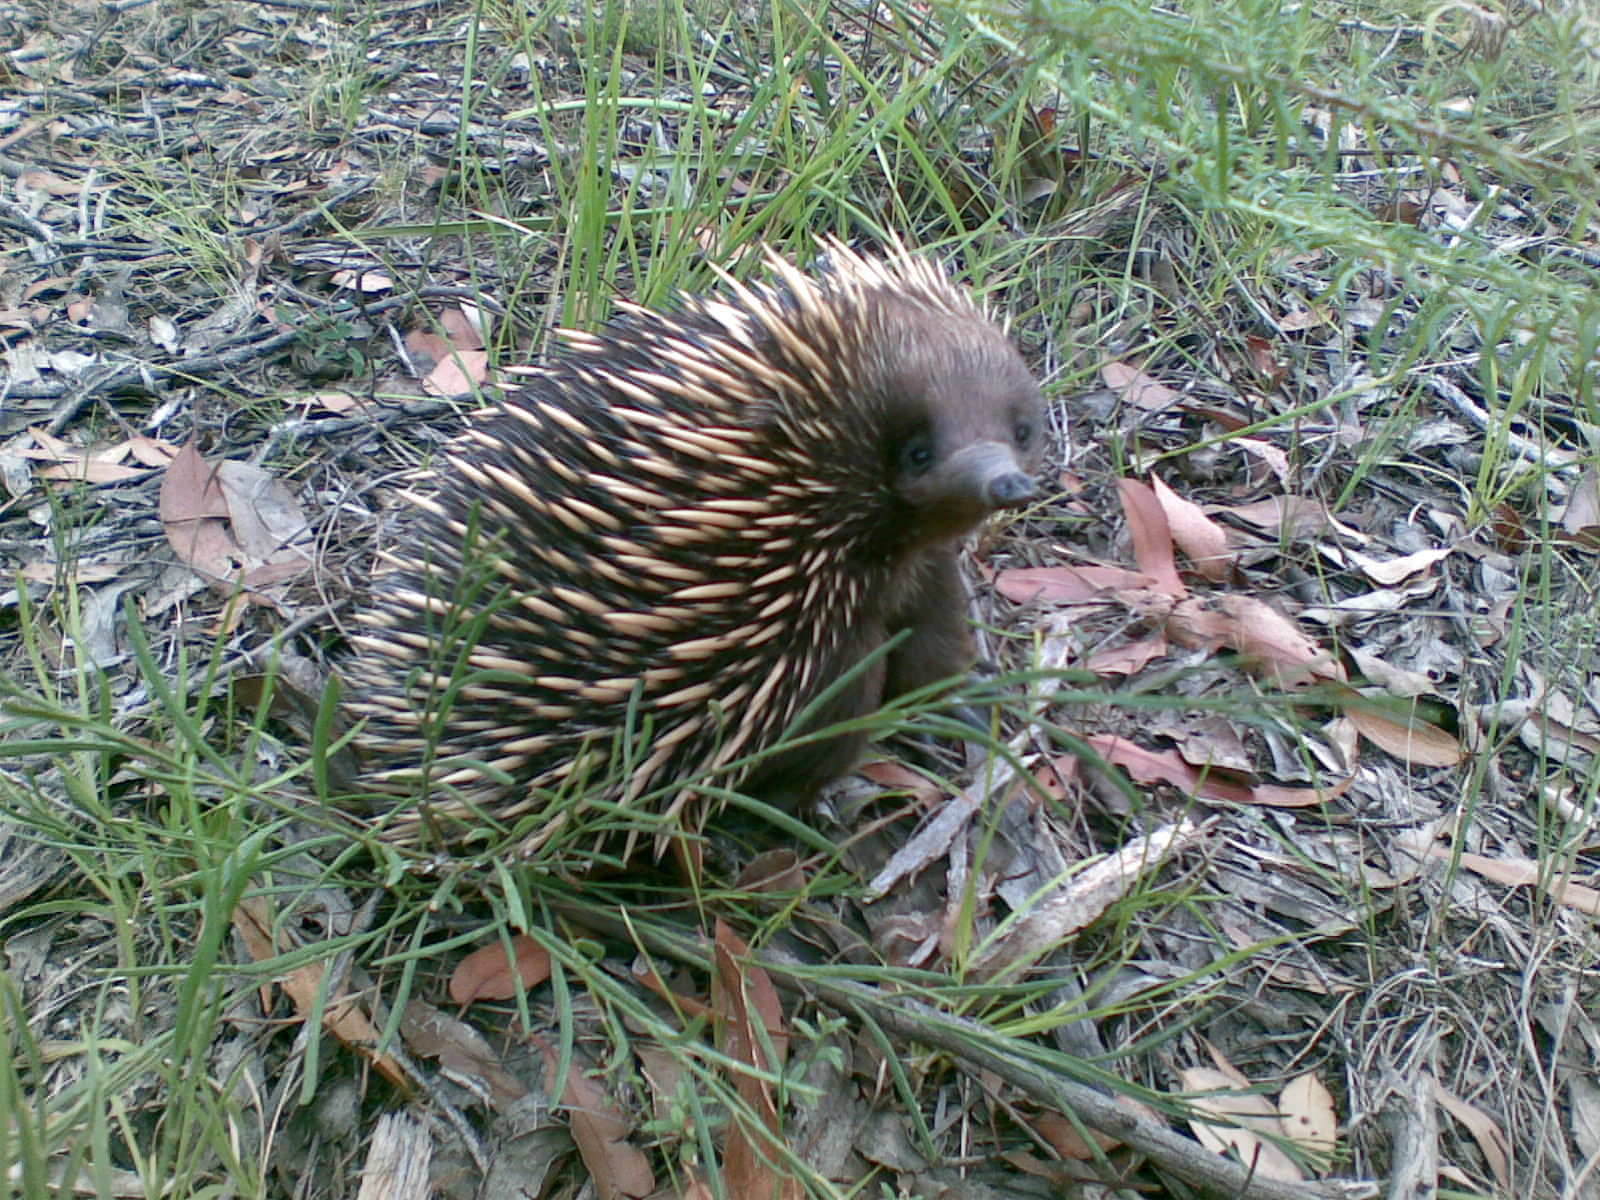 An echidna looking up to the camera on ground coveredin grass and leaves.